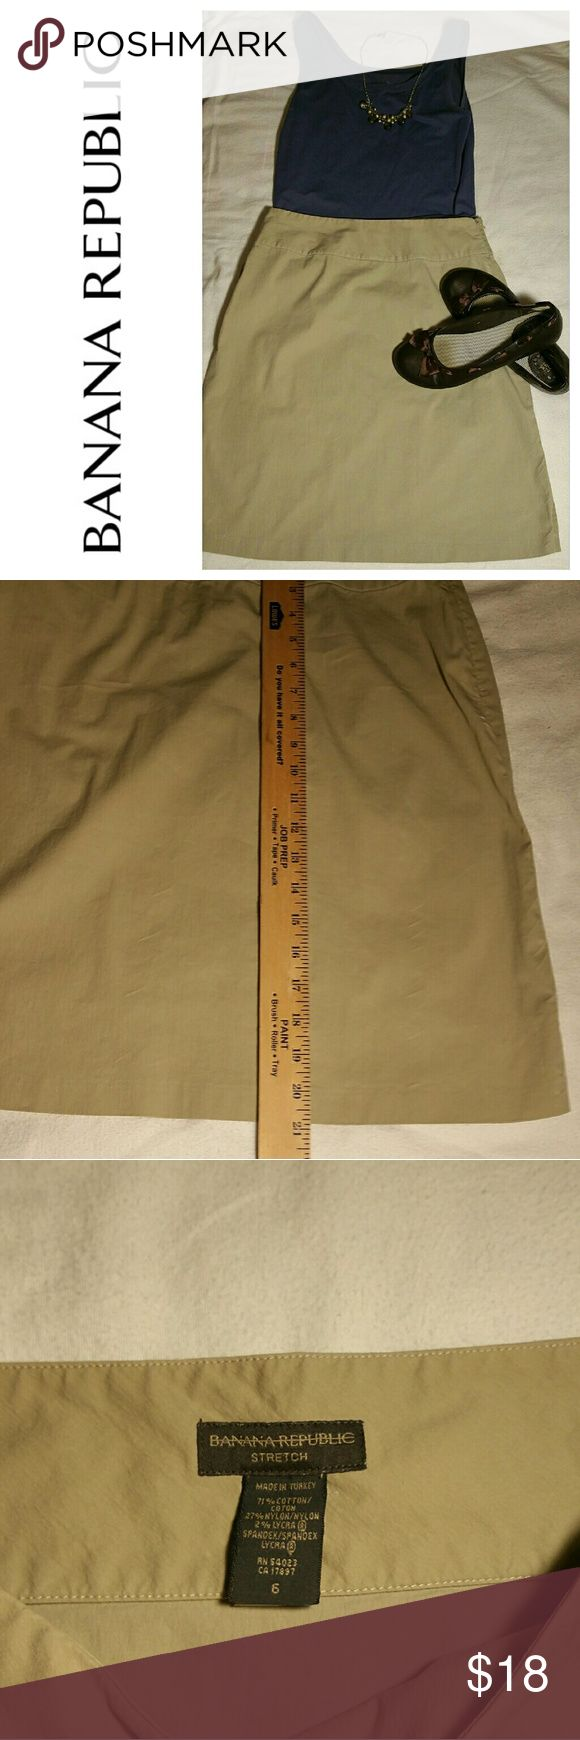 BANANA REPUBLIC KHAKI SKIRT ●BANANA REPUBLIC KHAKI SKIRT ●Size 6 ●Fabric is 71% cotton, 27% Nylon, 2% Lyra ● No known flaws, tears or stains ●Side hidden zipper ●Short slit on each side of skirt (see picture) ●Machine wash cold, Tumble dry ●This skirt has a crisp feel to it ●Pair he skirt with a tank and flats for a casual look ●Add a blazer and pumps to dress it up Banana Republic Skirts Midi